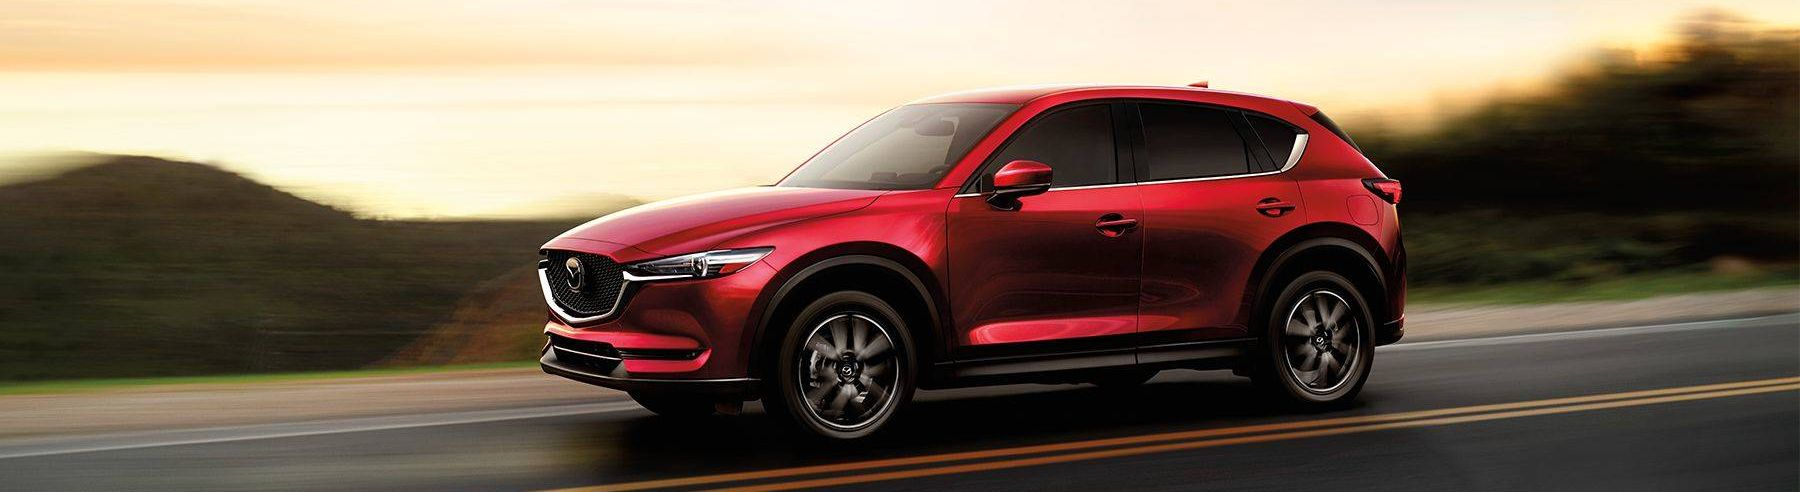 2018 Mazda CX-5 Financing near Stockton, CA